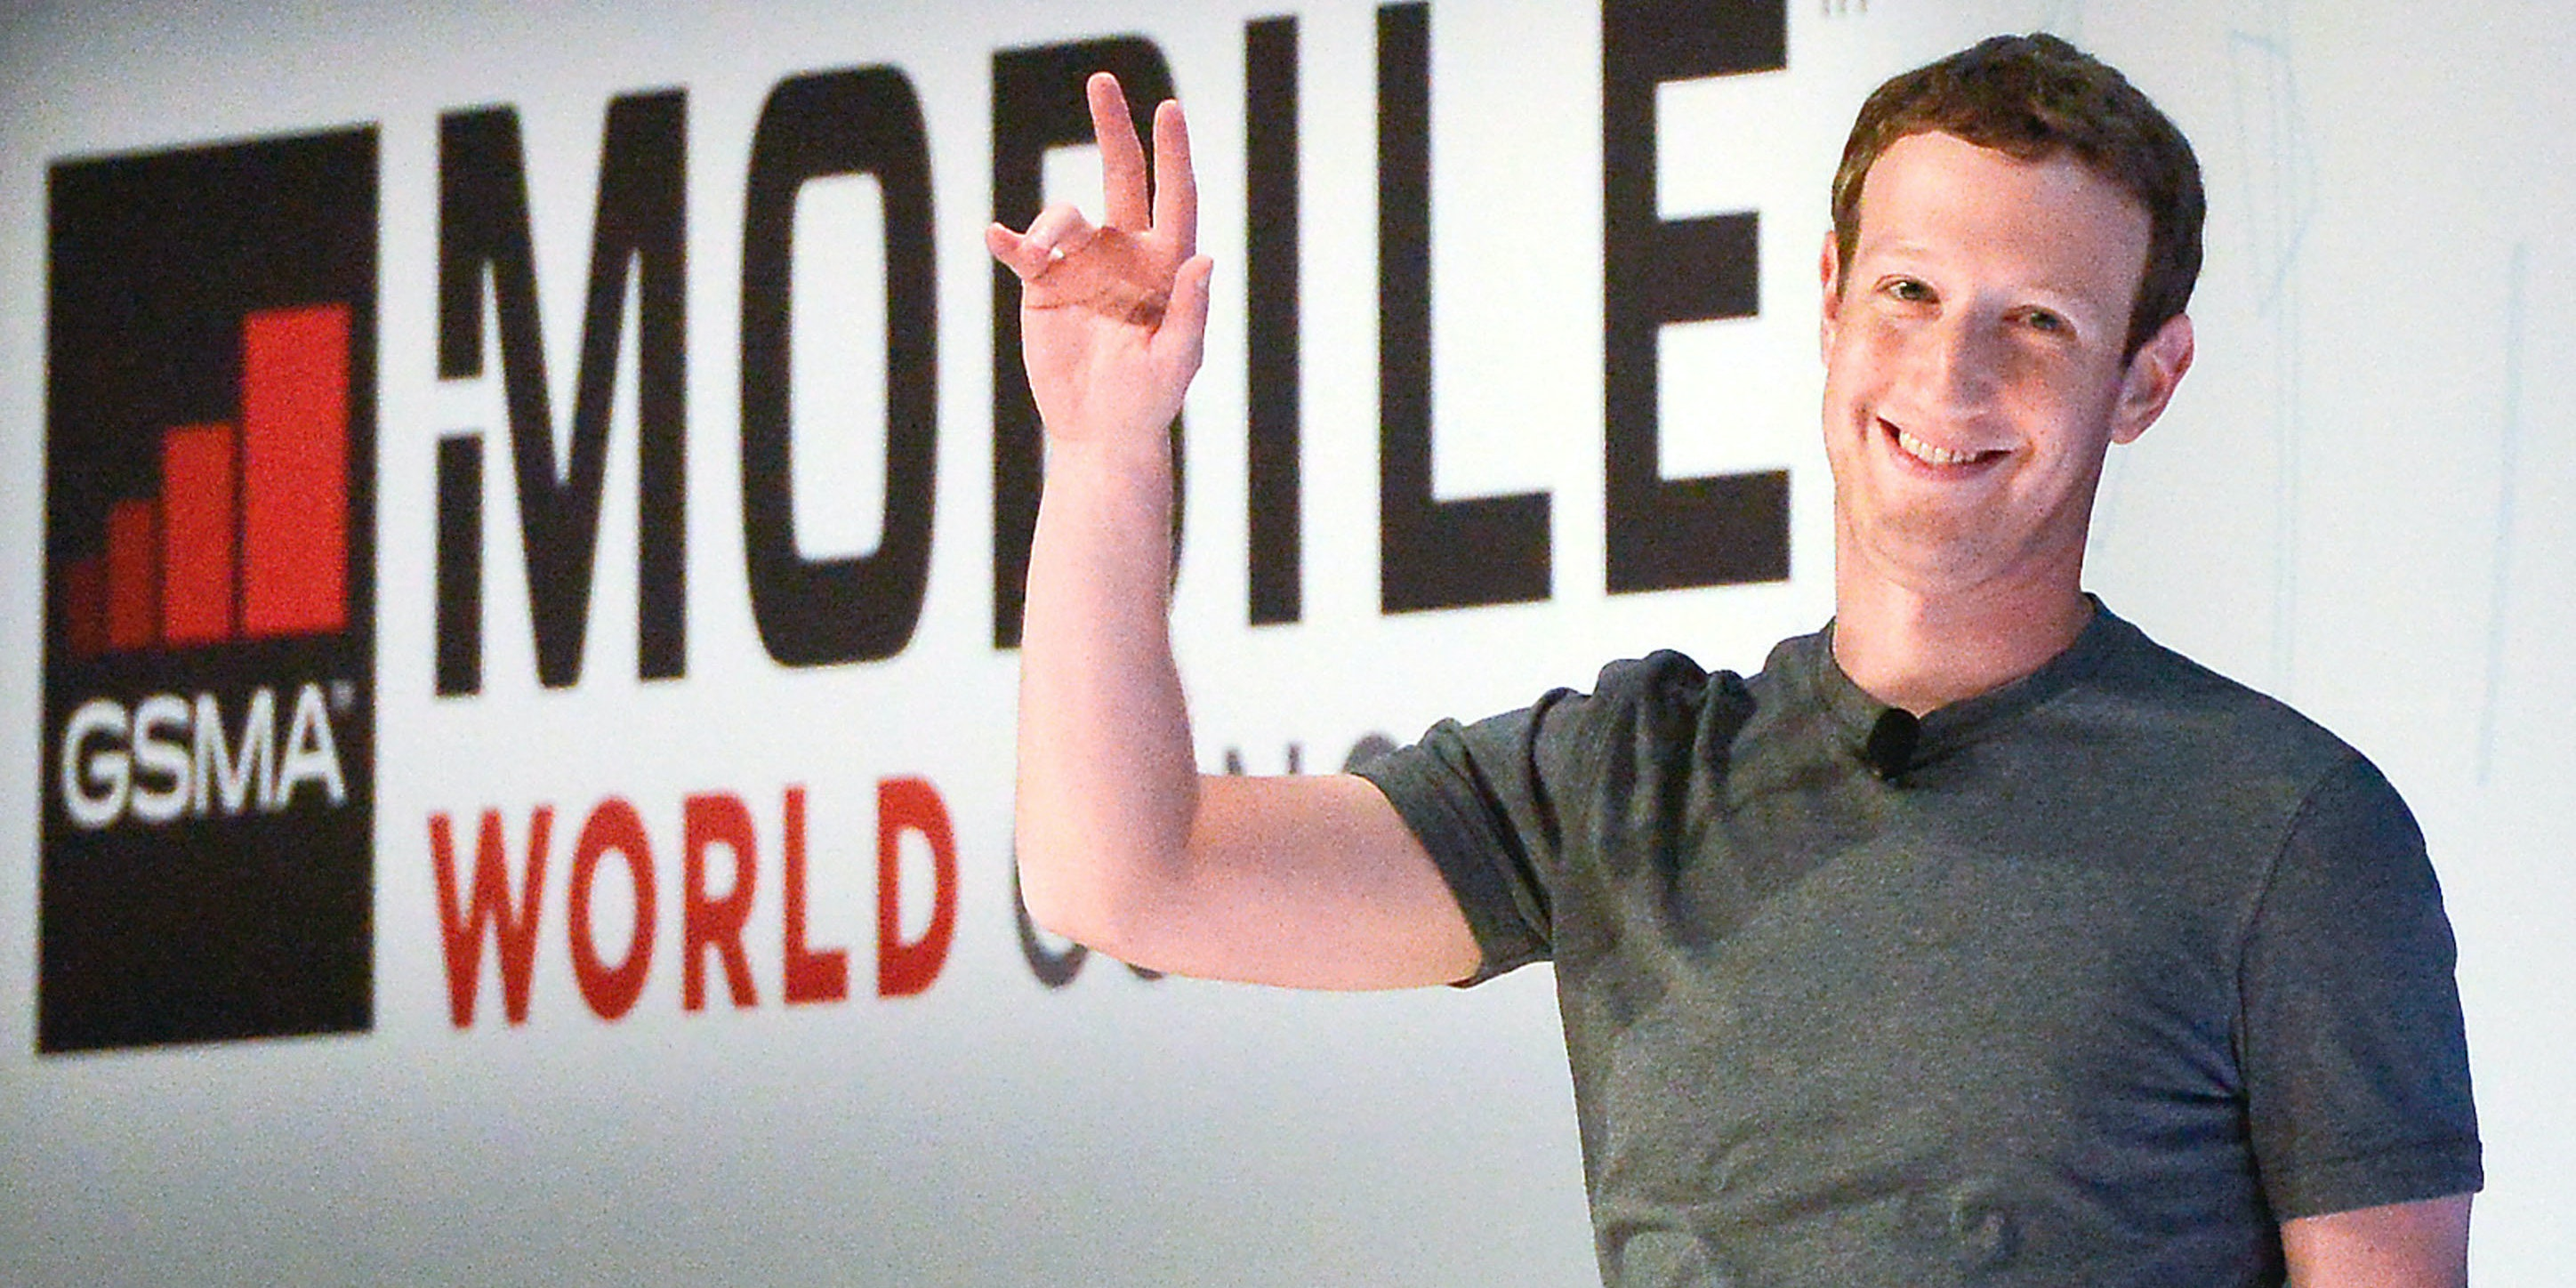 BARCELONA, SPAIN - FEBRUARY 22:  Founder and CEO of Facebook Mark Zuckerberg waves as he arrives for a keynote conference on the opening day of the World Mobile Congress at the Fira Gran Via Complex on February 22, 2016 in Barcelona, Spain. The annual Mobile World Congress hosts some of the world's largest communications companies, with many unveiling their latest phones and wearables gadgets.  (Photo by David Ramos/Getty Images)